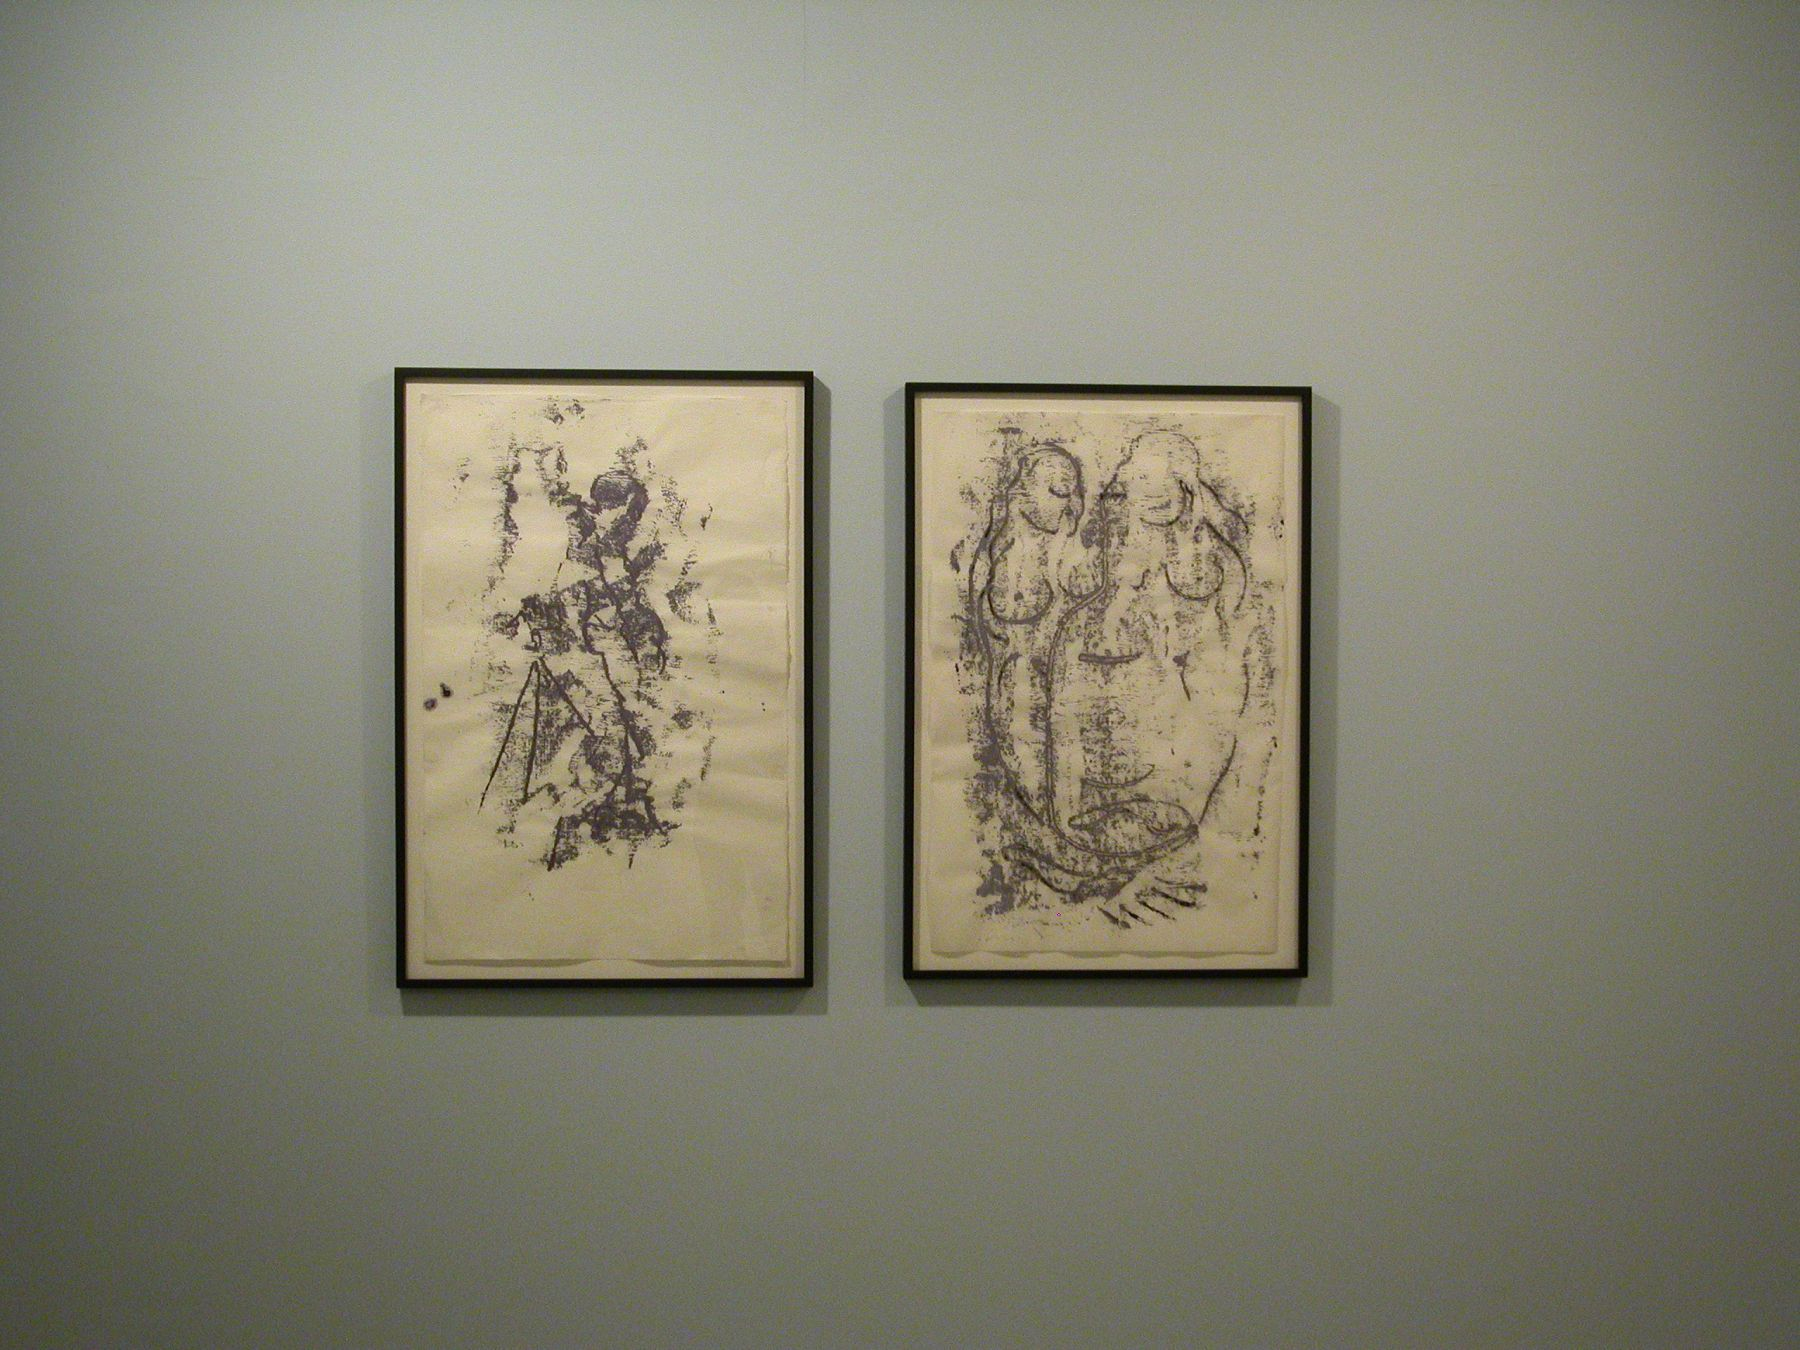 Untitled, and Untitled, Sophie von Hellerman and Josh Smith, Salon, Greene Naftali, New York, 2006